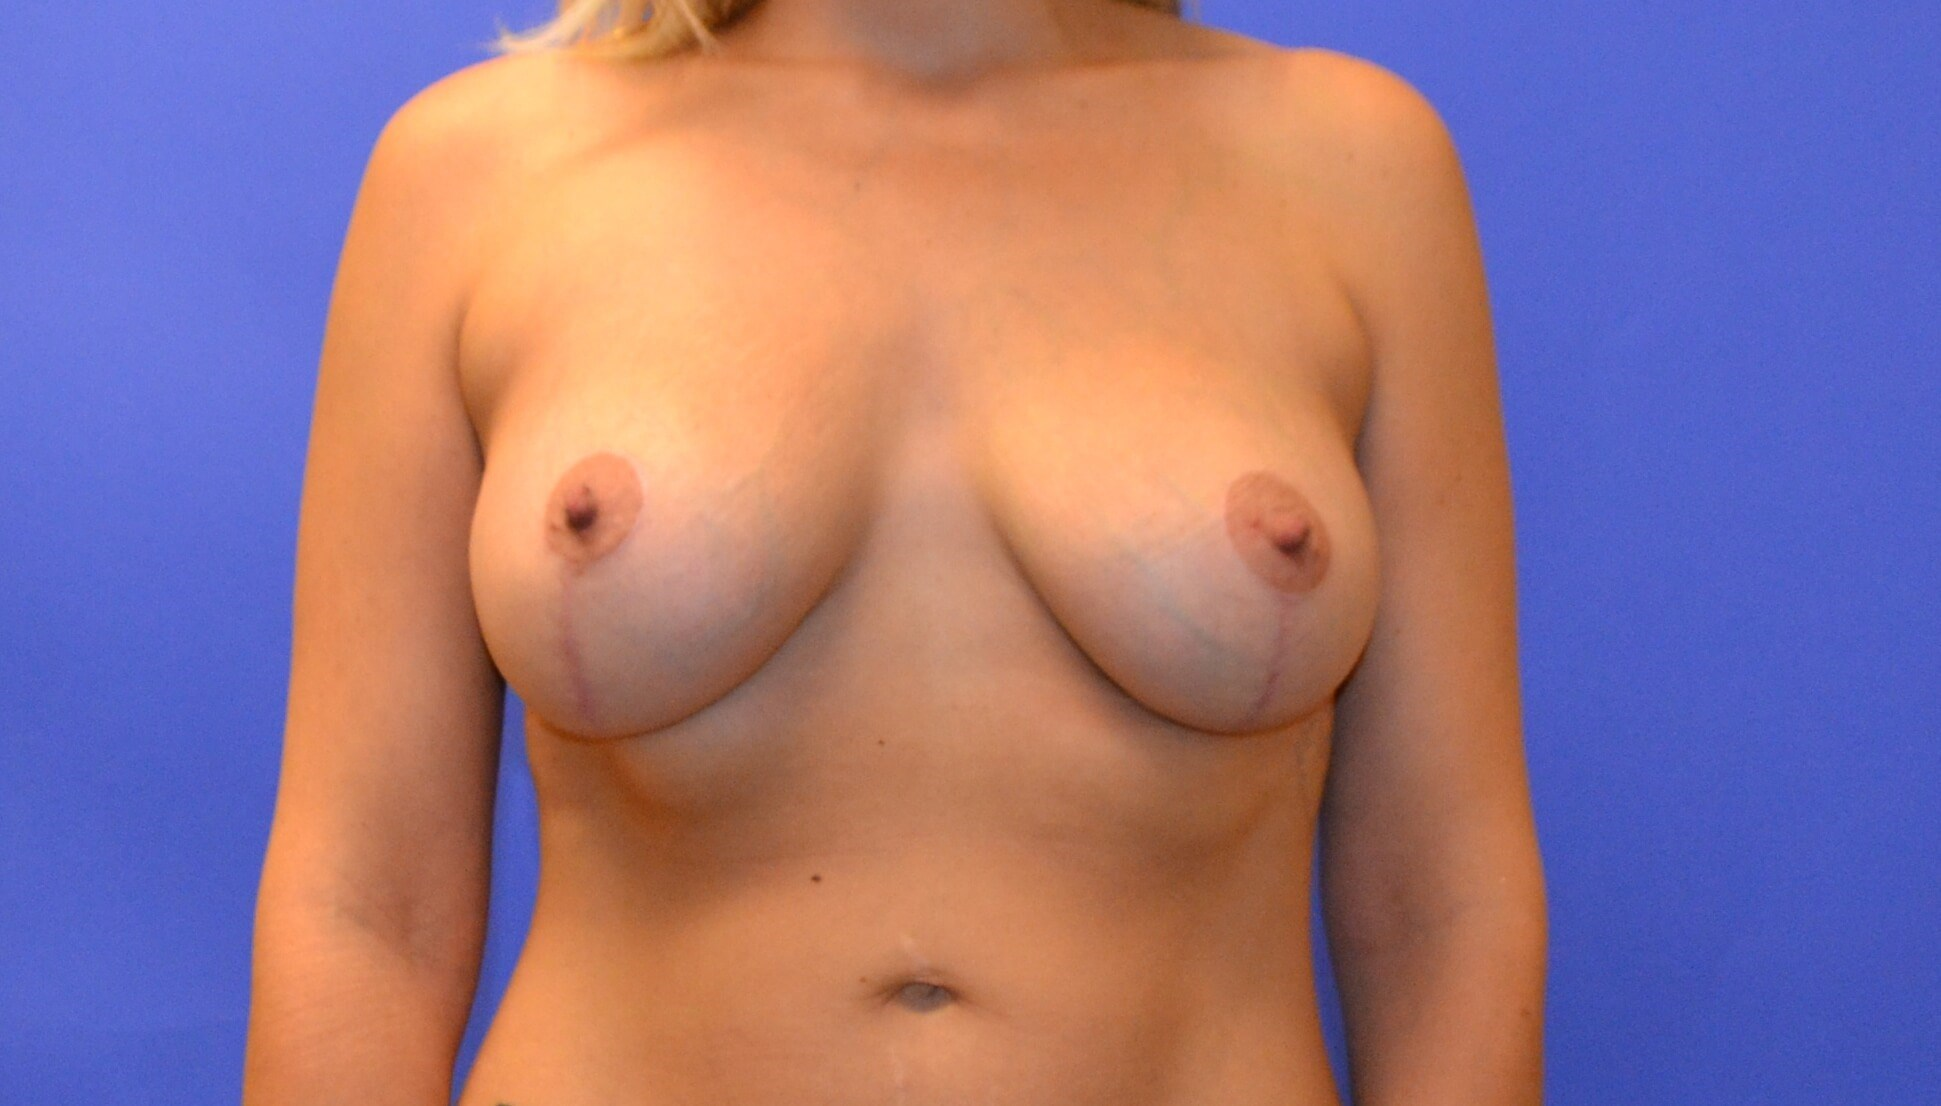 Breast Lift & Augmentation After 8 months